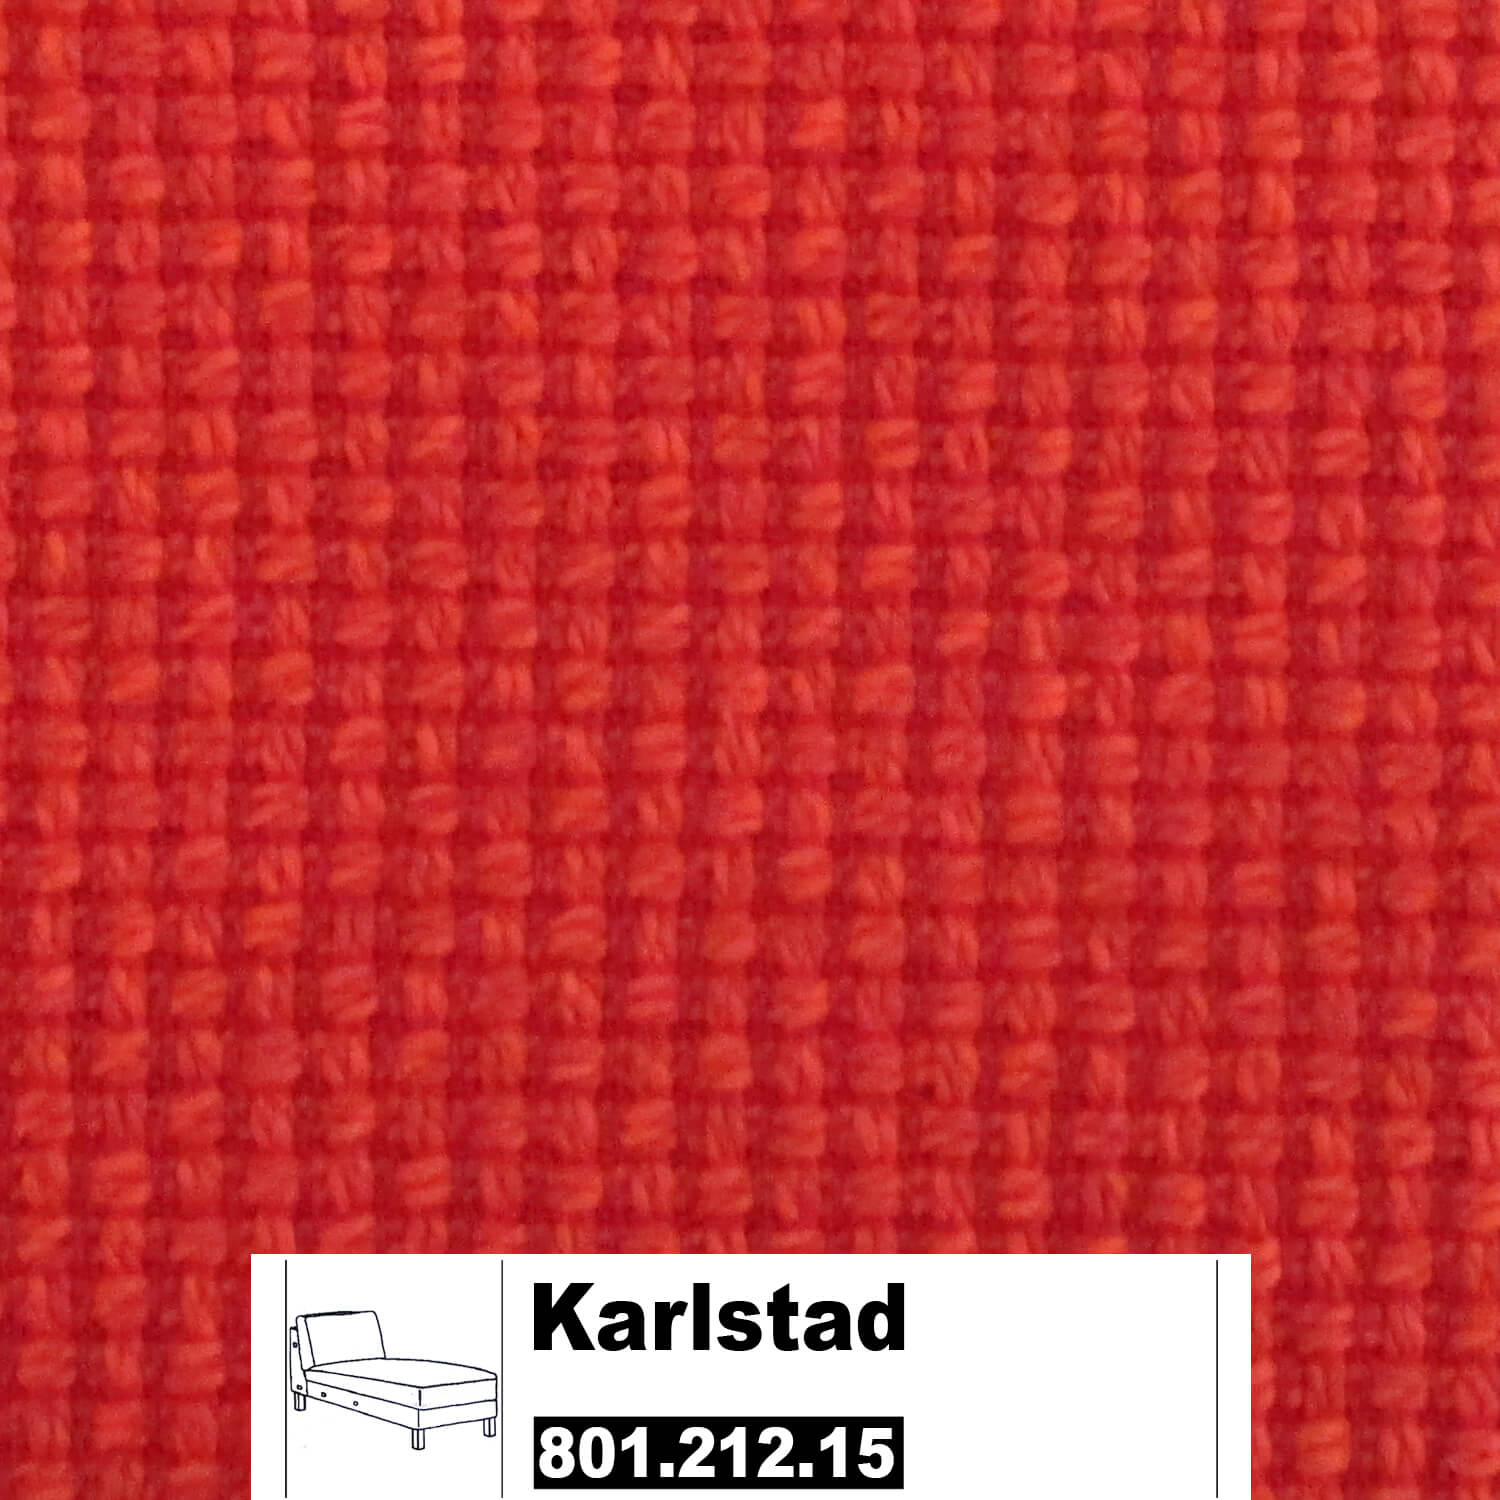 ikea karlstad bezug f r recamiere anbau in korndal rot 80121215 80121215. Black Bedroom Furniture Sets. Home Design Ideas